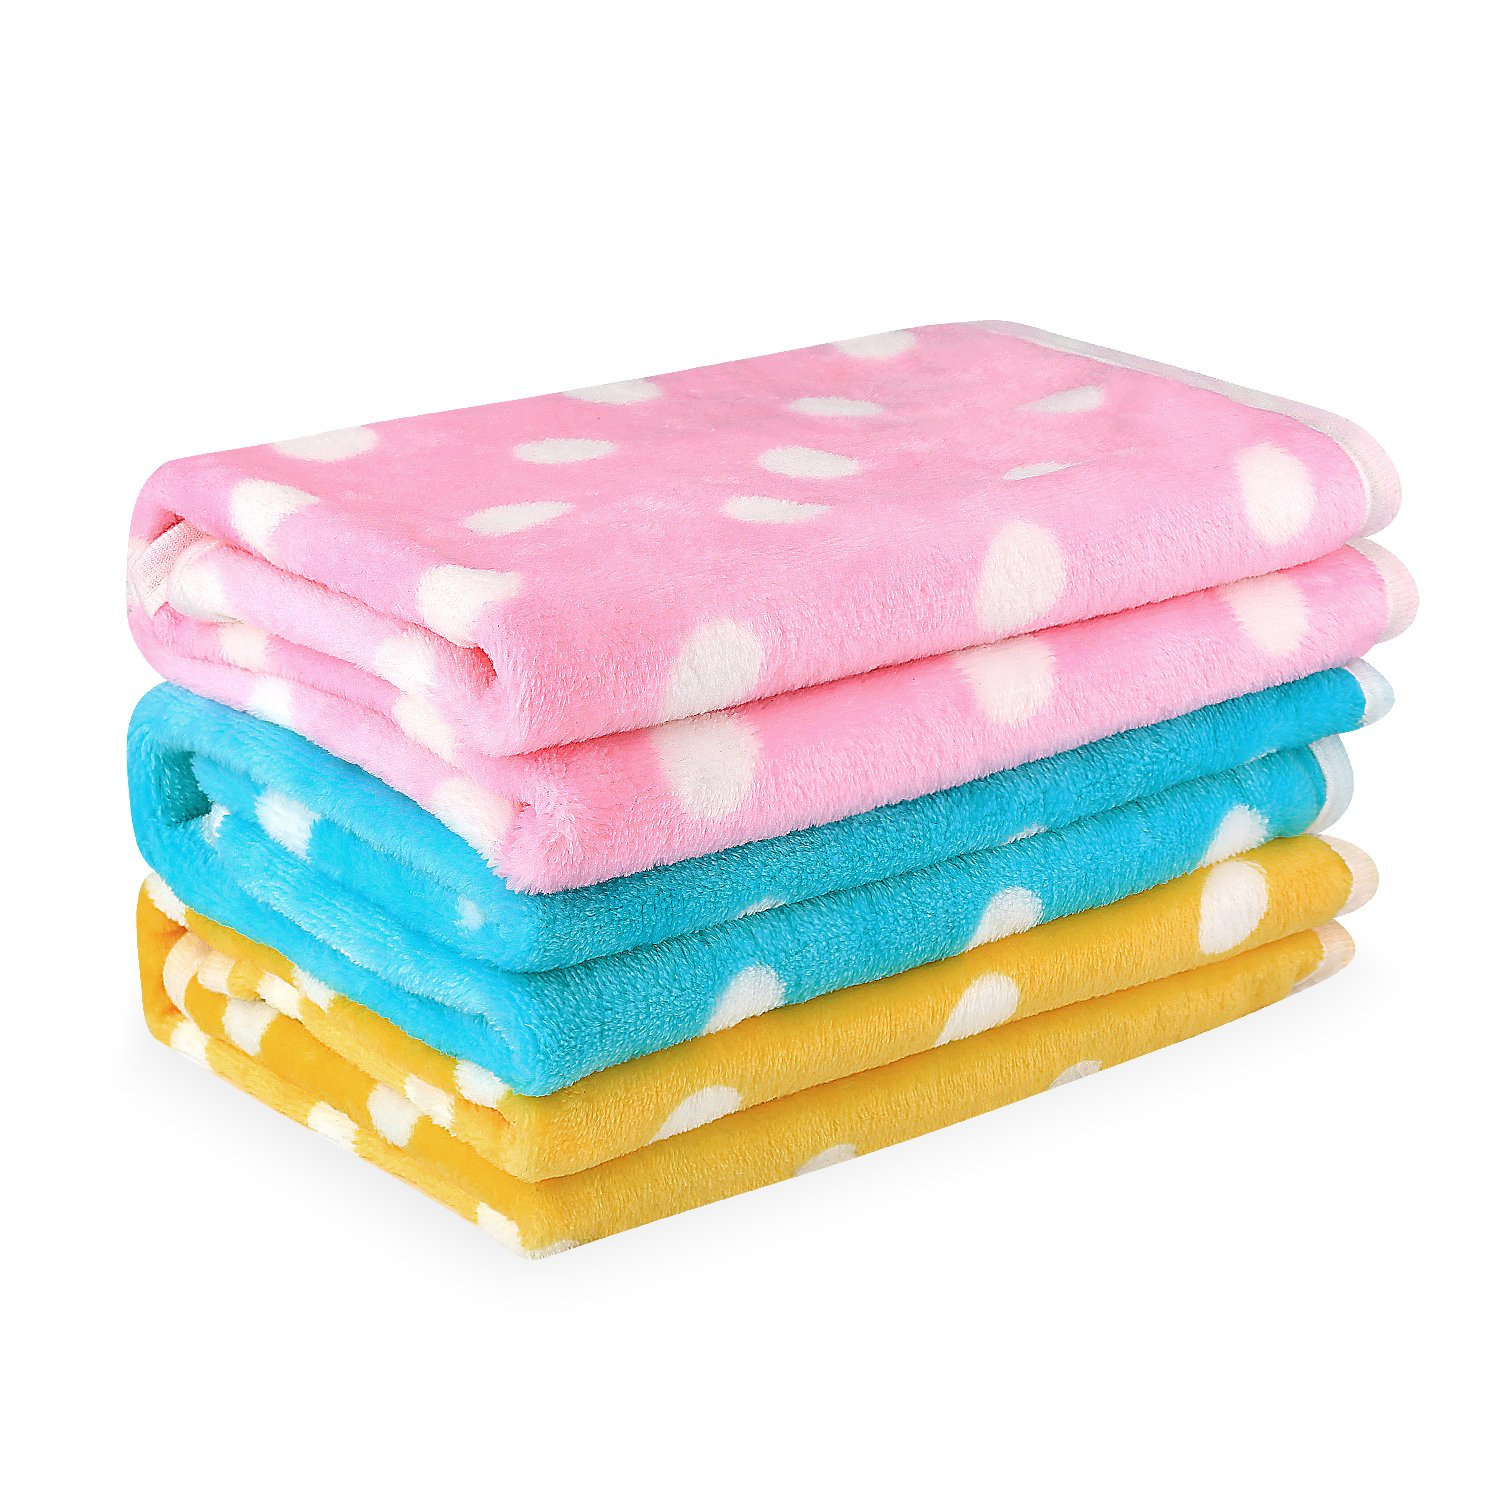 Pet Dog Blanket - Cat Puppy Blanket Soft Warm Sleep Mat - For Couch,Car, Bed - Dog Cat and Other Small Animals (Pink, Green,Yellow-3)